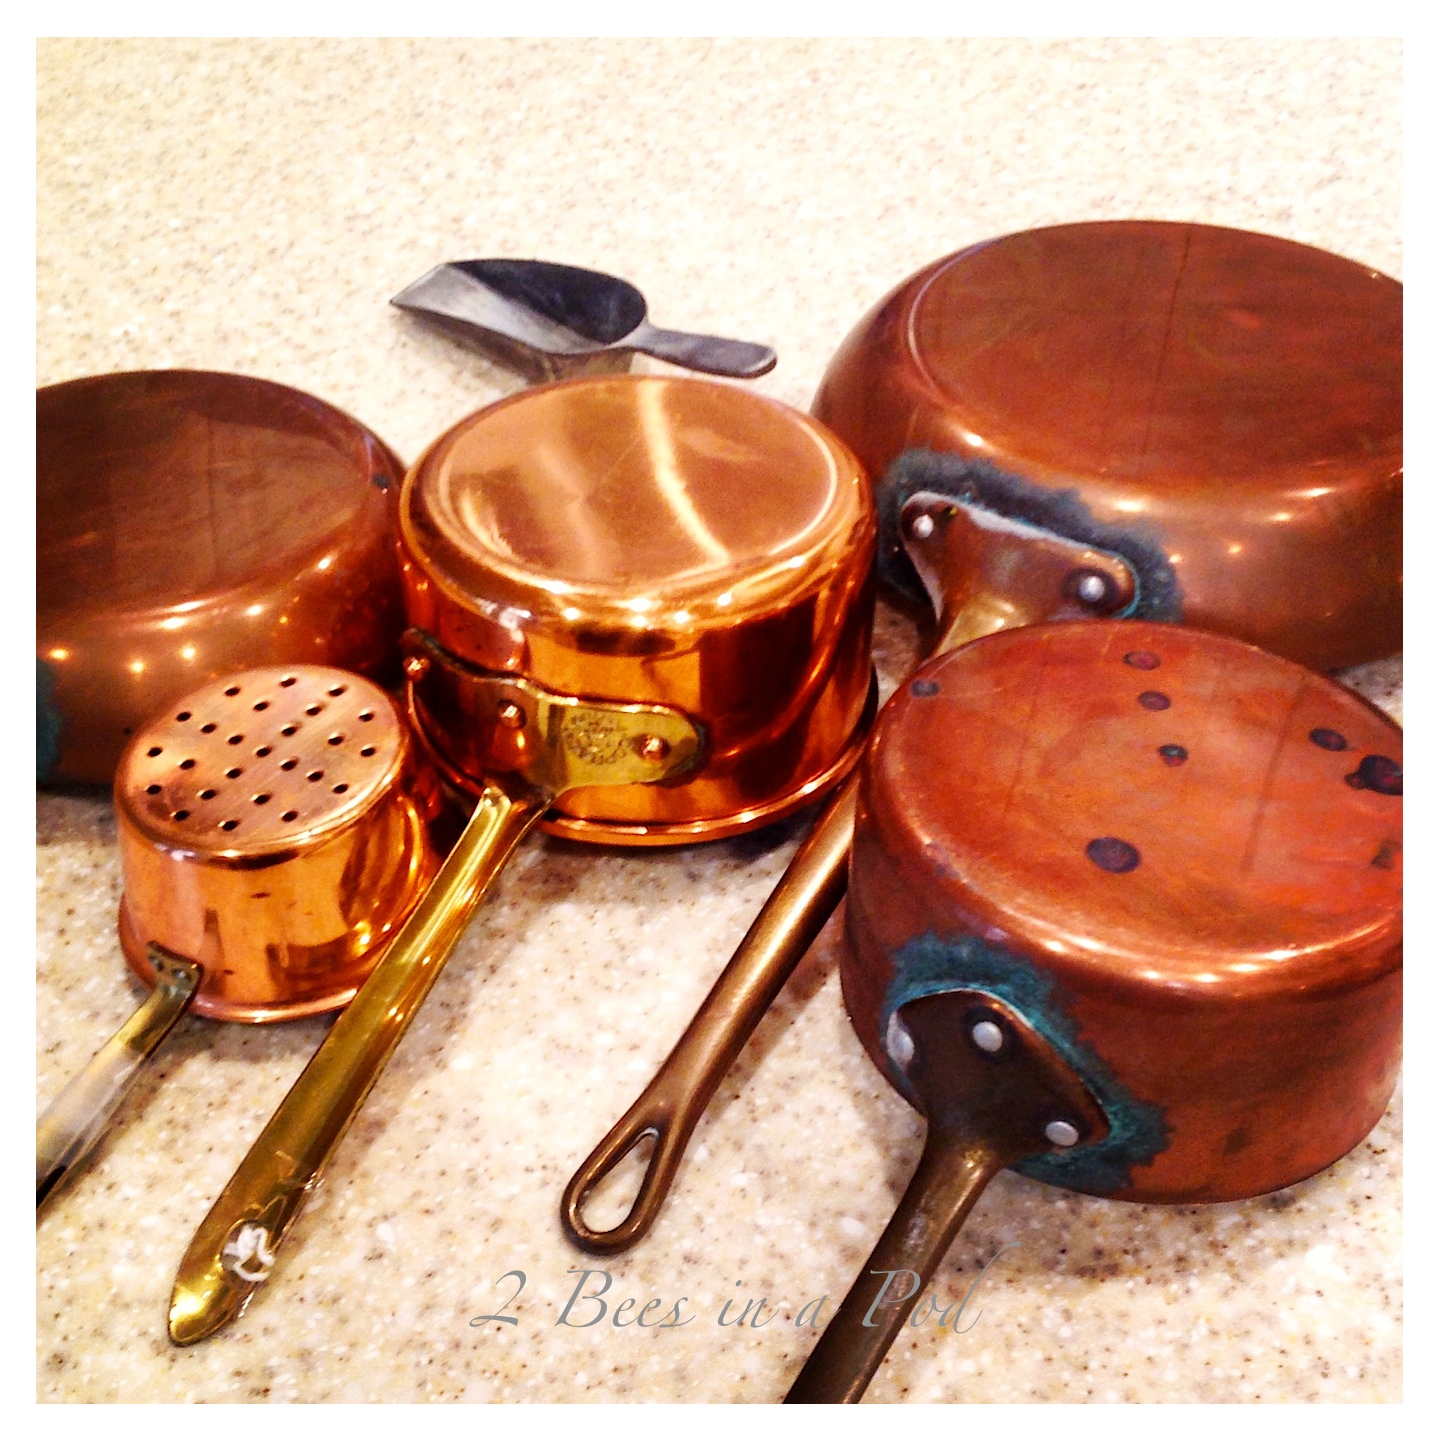 A safe and organic way to clean copper pots and pans. Use lemon and kosher salt to wipe away grime. Shiny and polished!